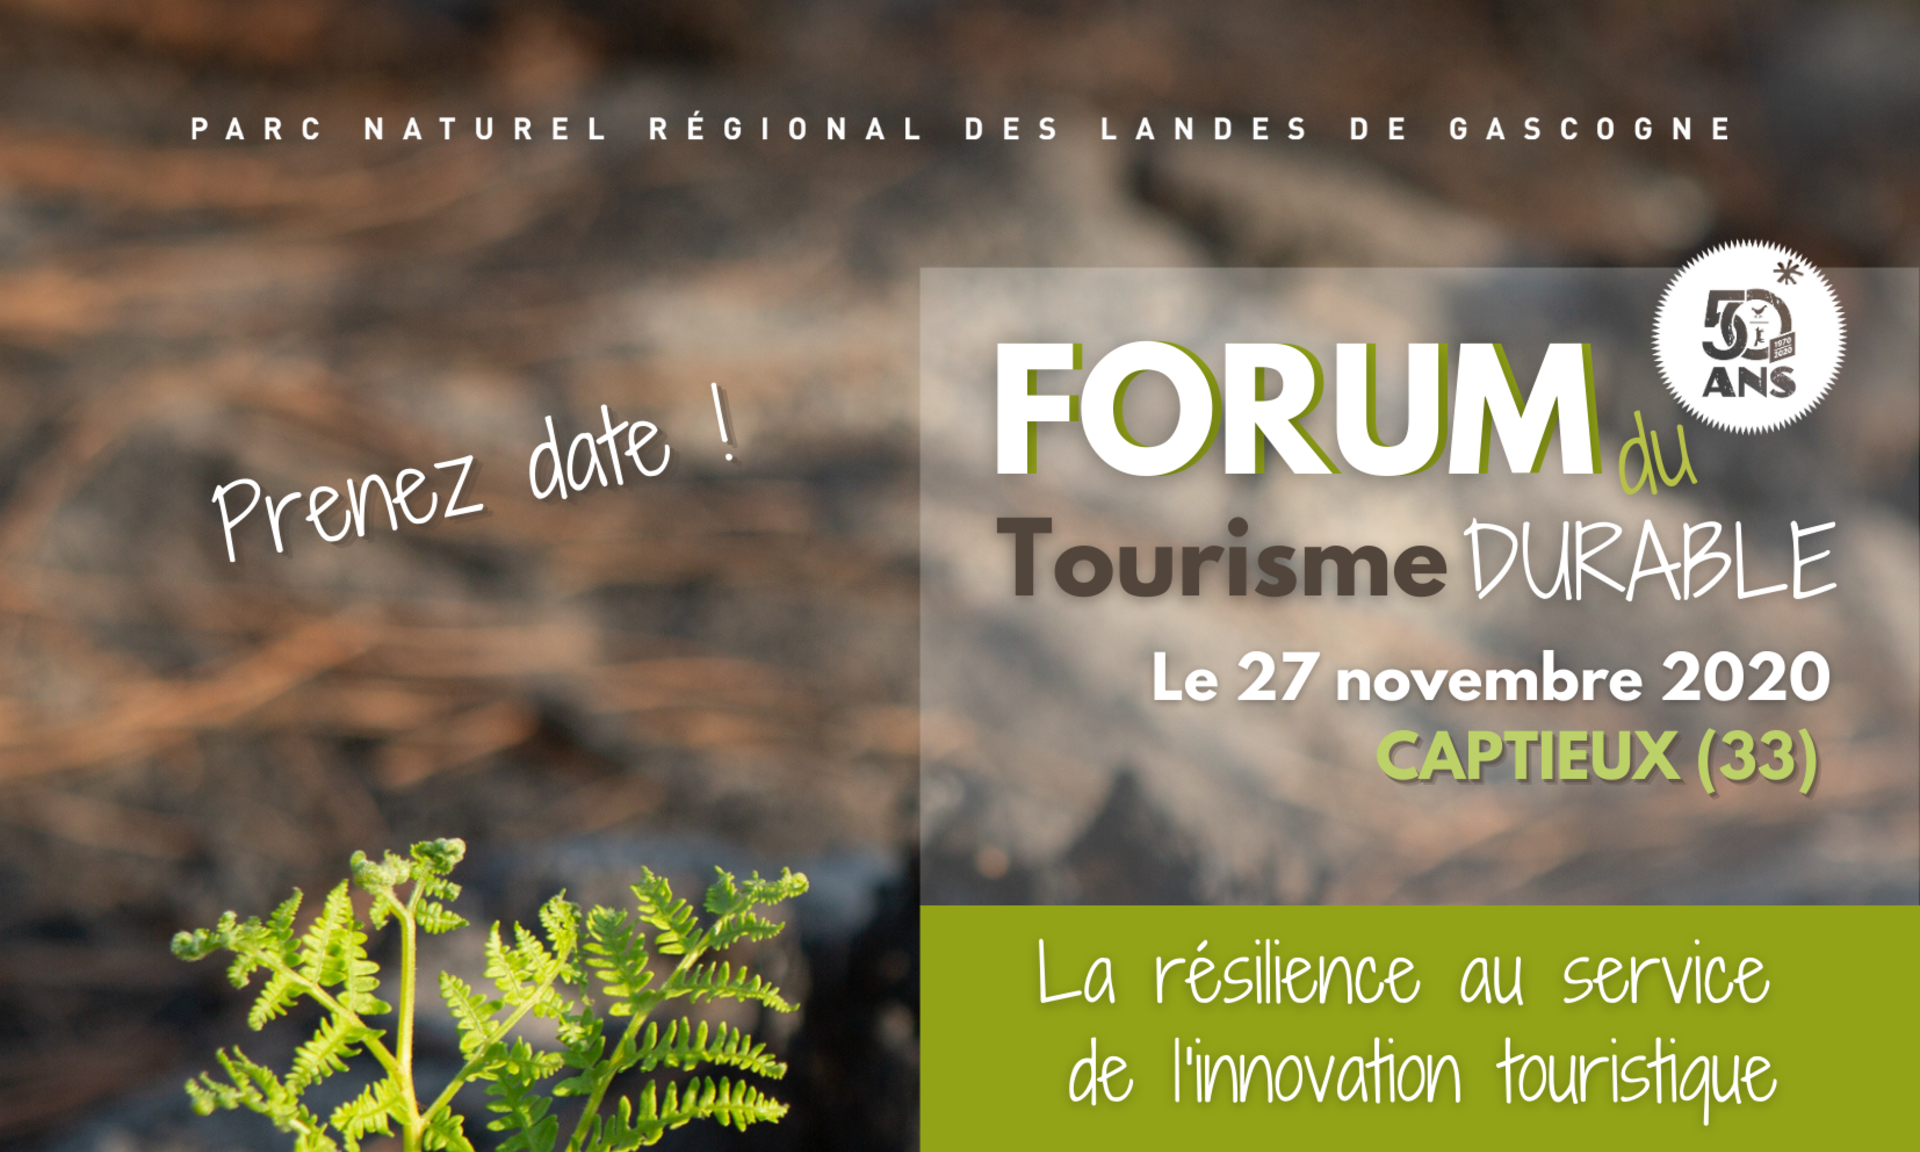 Forum du Tourisme Durable 2020 – Captieux